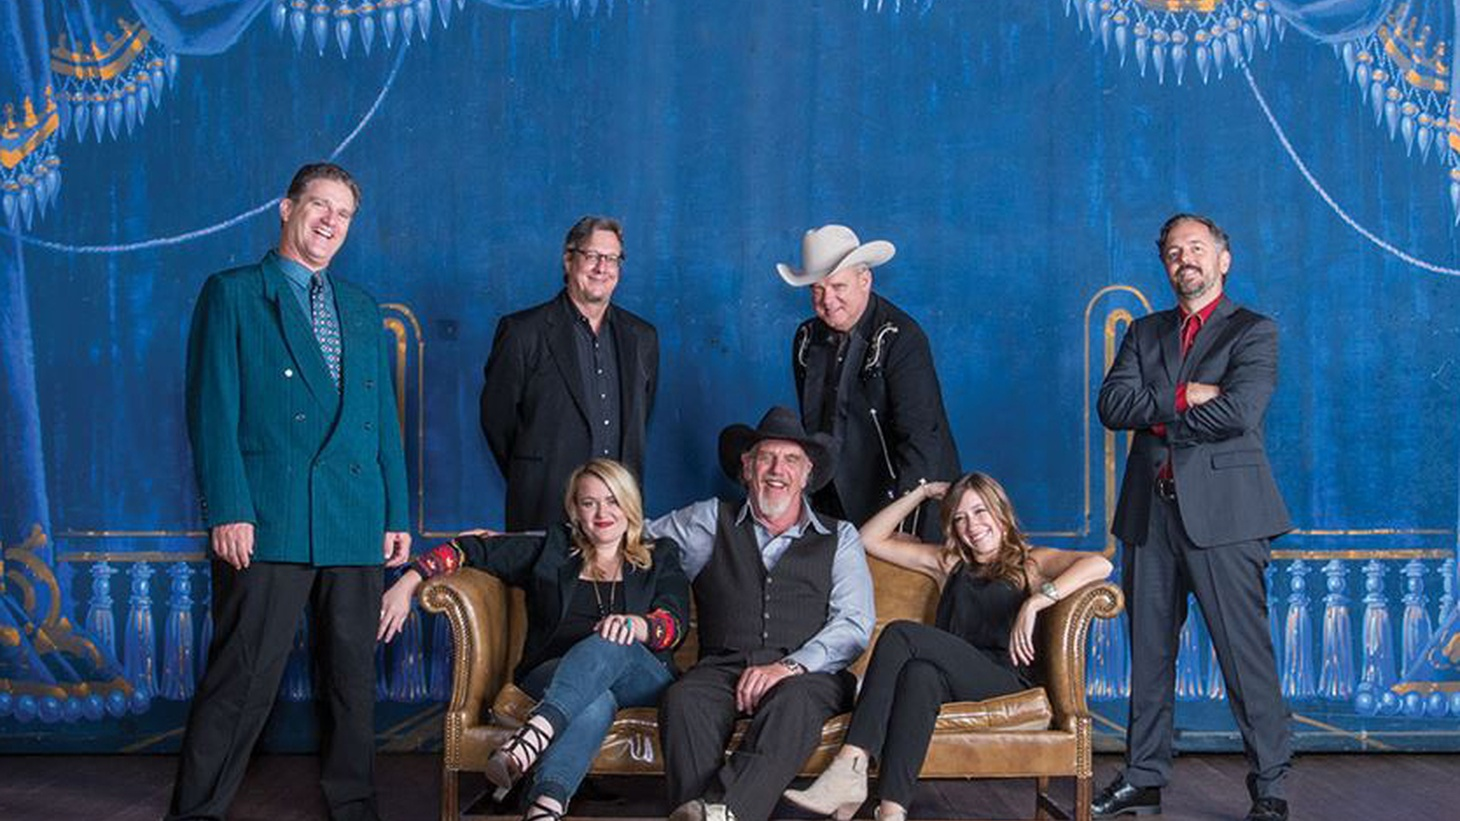 Asleep At The Wheel rounded up old friends -- including Merle Haggard and Willie Nelson -- to celebrate the music of Bob Wills and his Texas Playboys on their latest release.